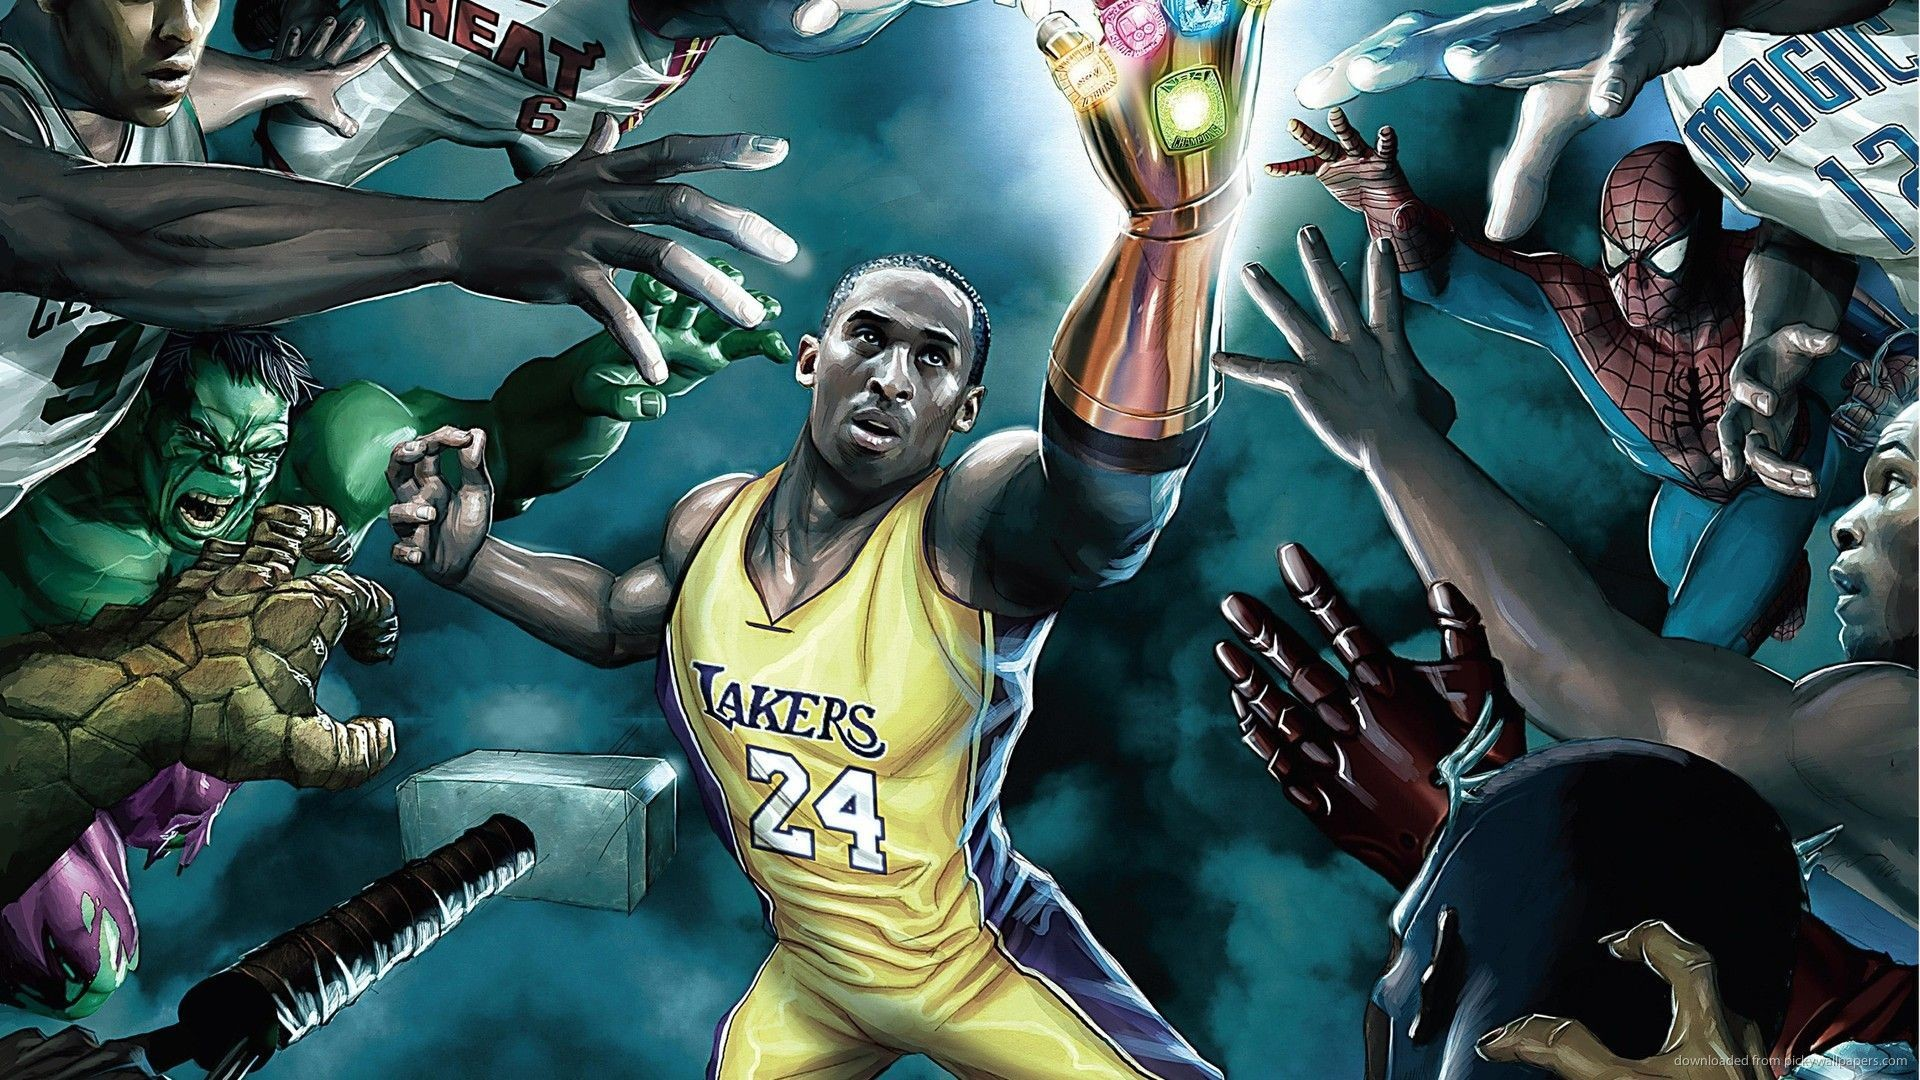 'power moves' featuring basketball players, kobe bryant & lebron james &  marvel super heroes by greg horn